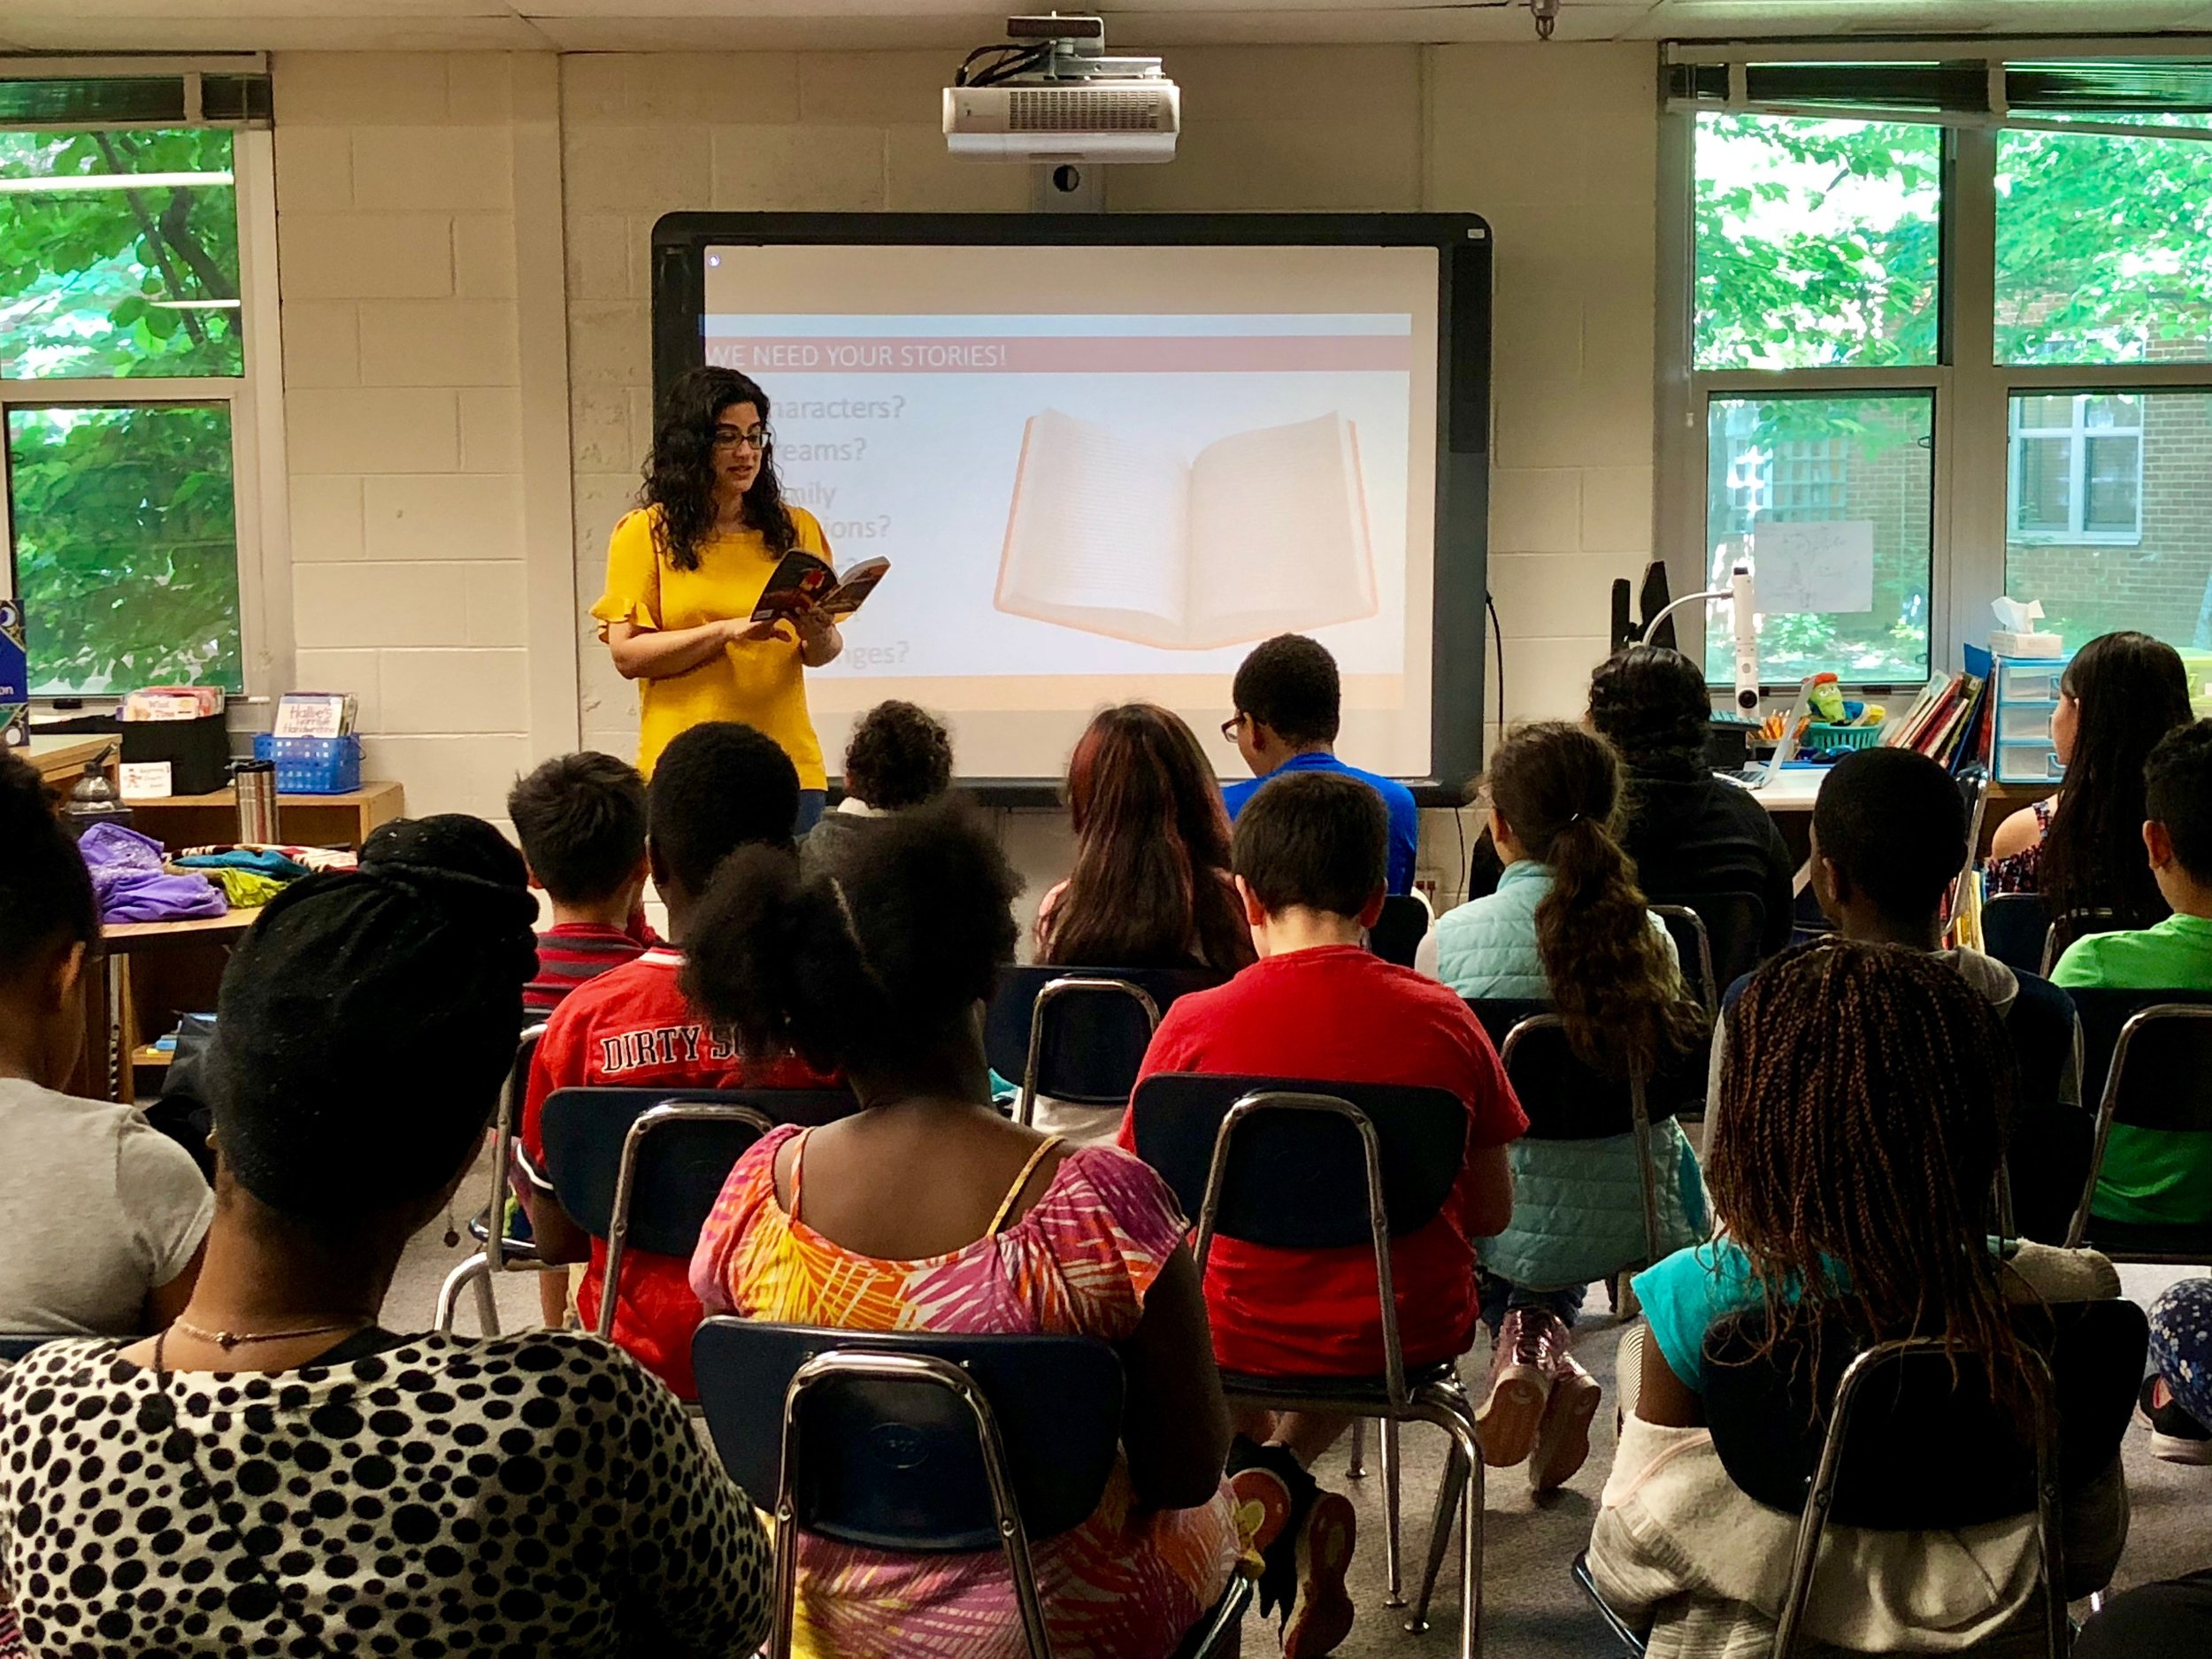 A visit to Whetstone Elementary School with An Open Book Foundation